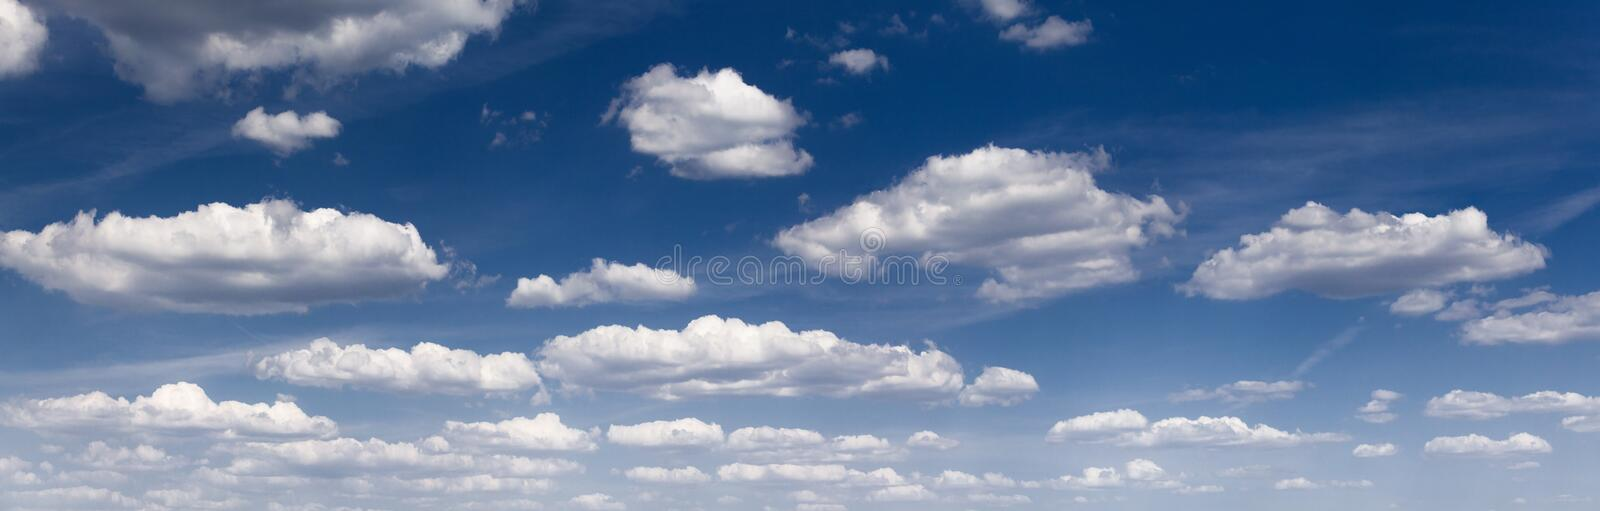 Panorama of the white fluffy clouds royalty free stock photography